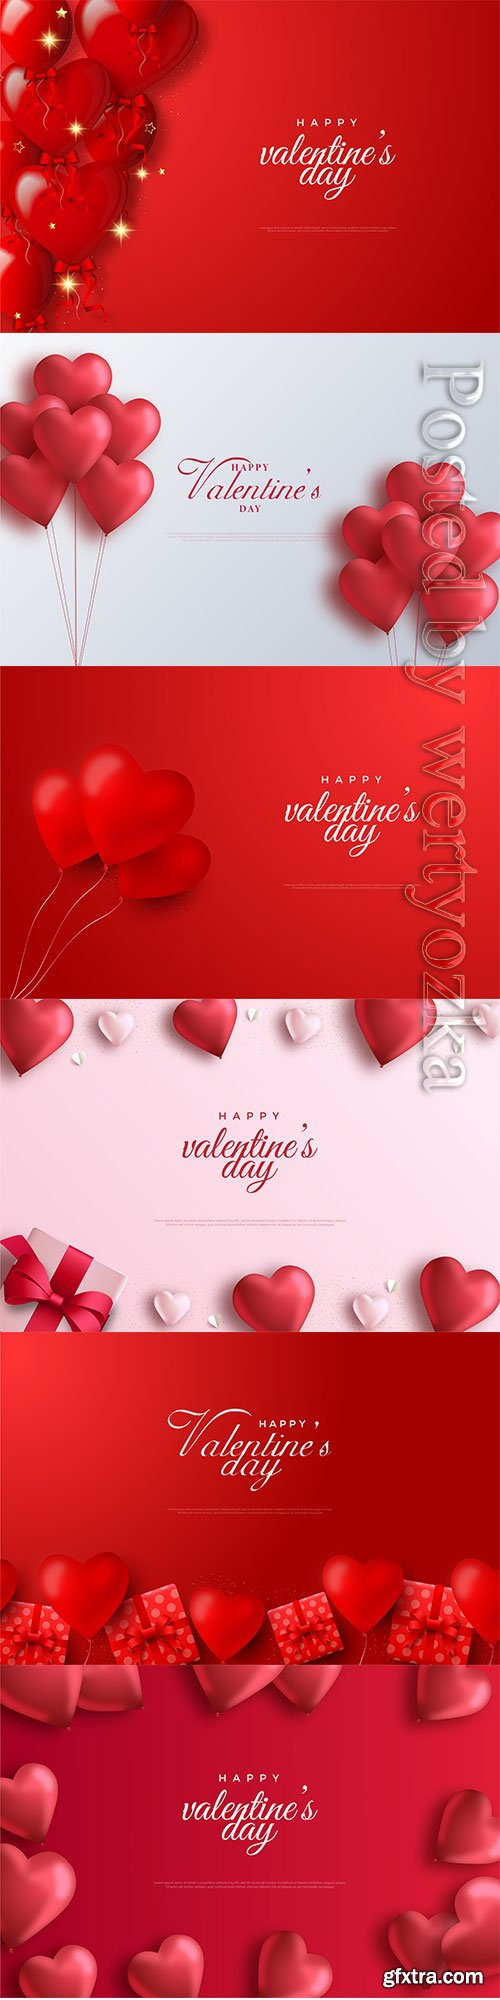 Valentine day vector background with red balloons